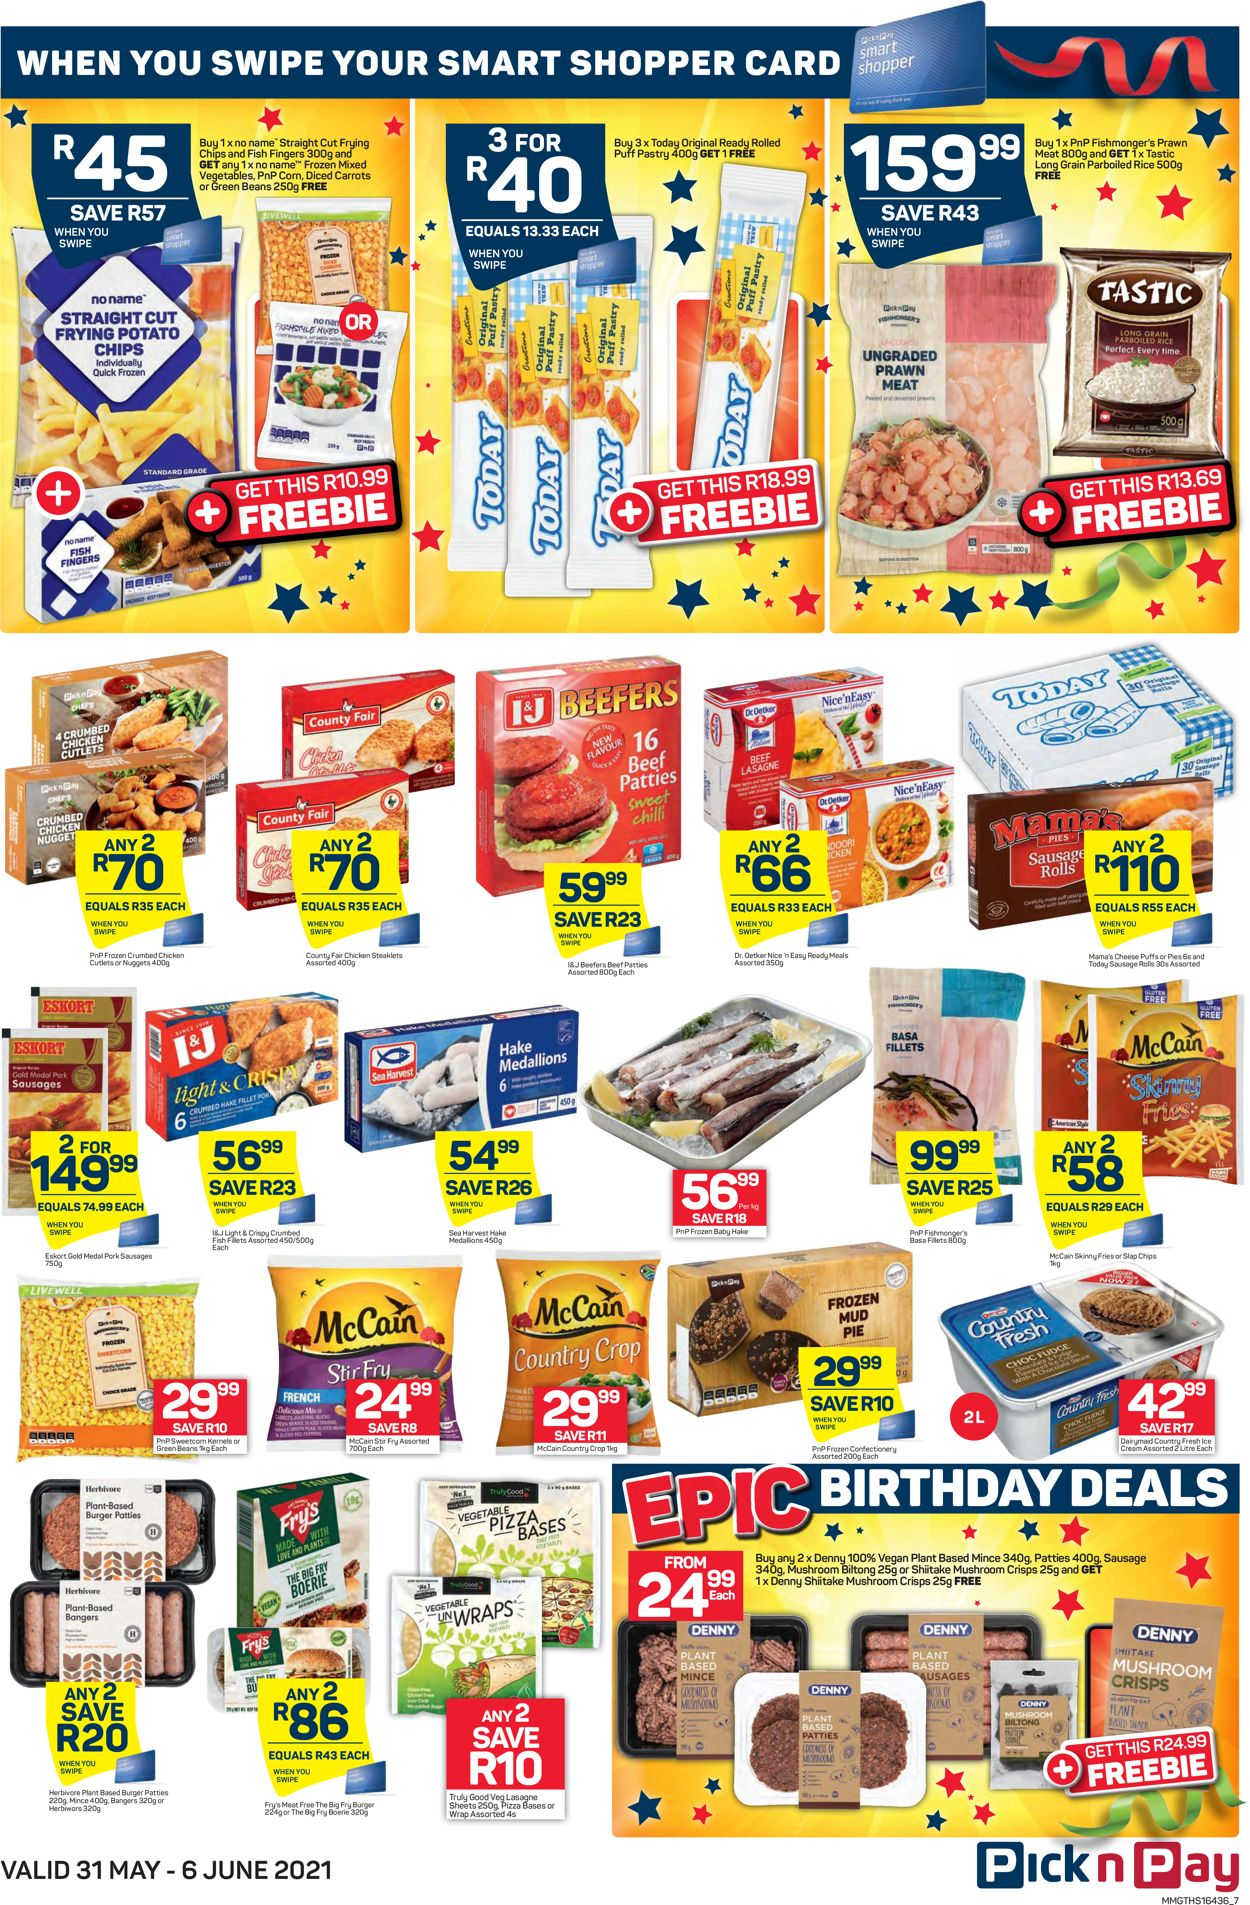 Pick n Pay Catalogue - 2021/05/31-2021/06/06 (Page 7)